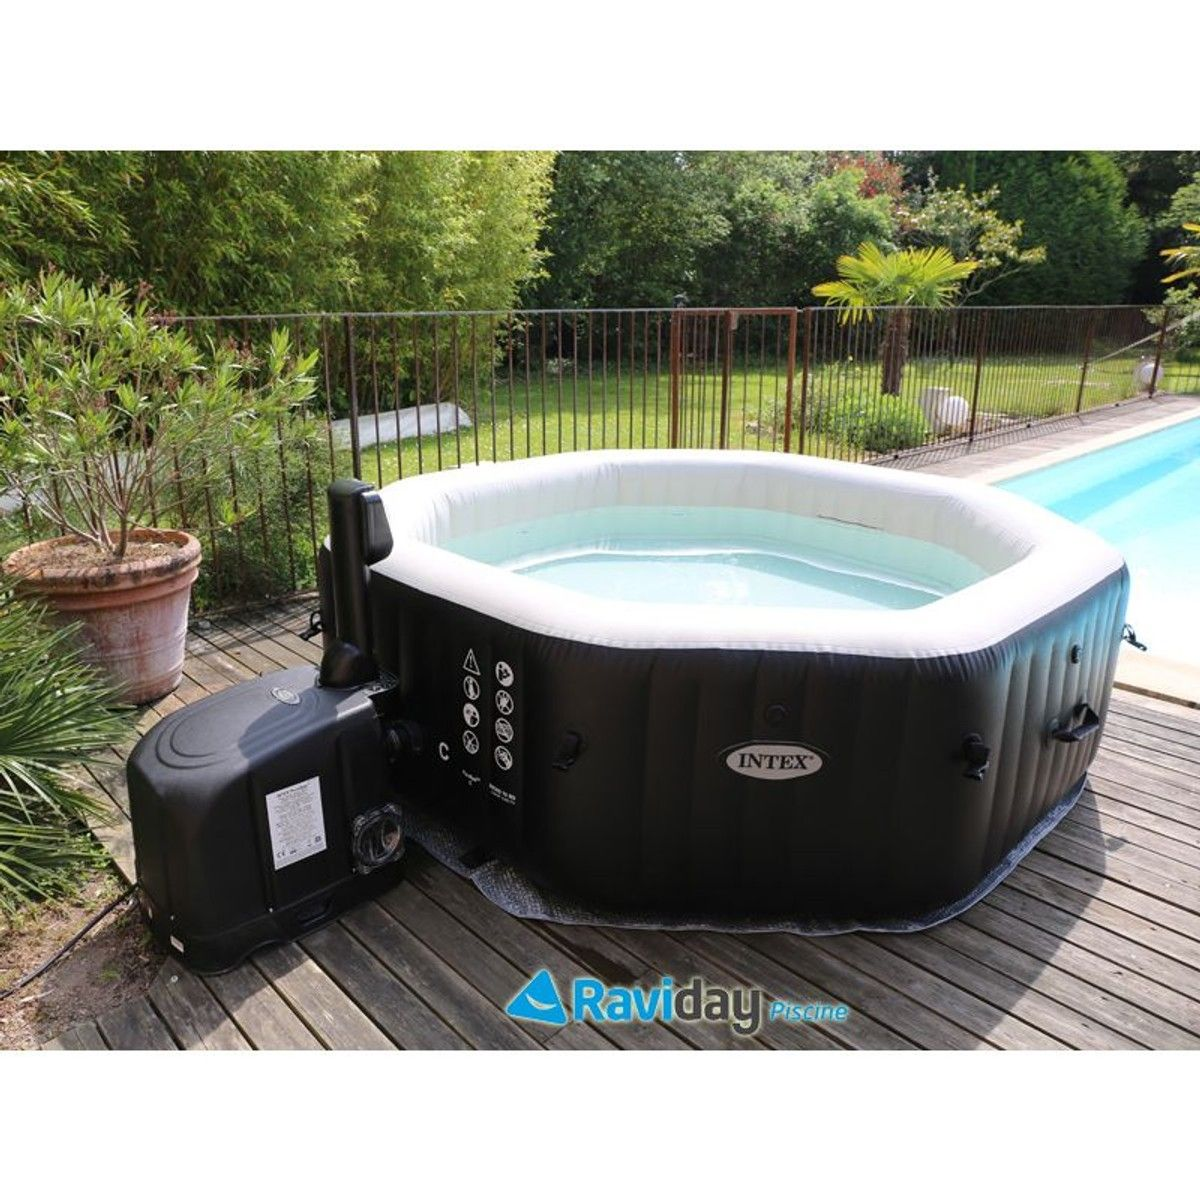 Spa Gonflable Octogonal 4 Personnes Pure Spa Spa Gonflable Spa Gonflable Intex Gonflable